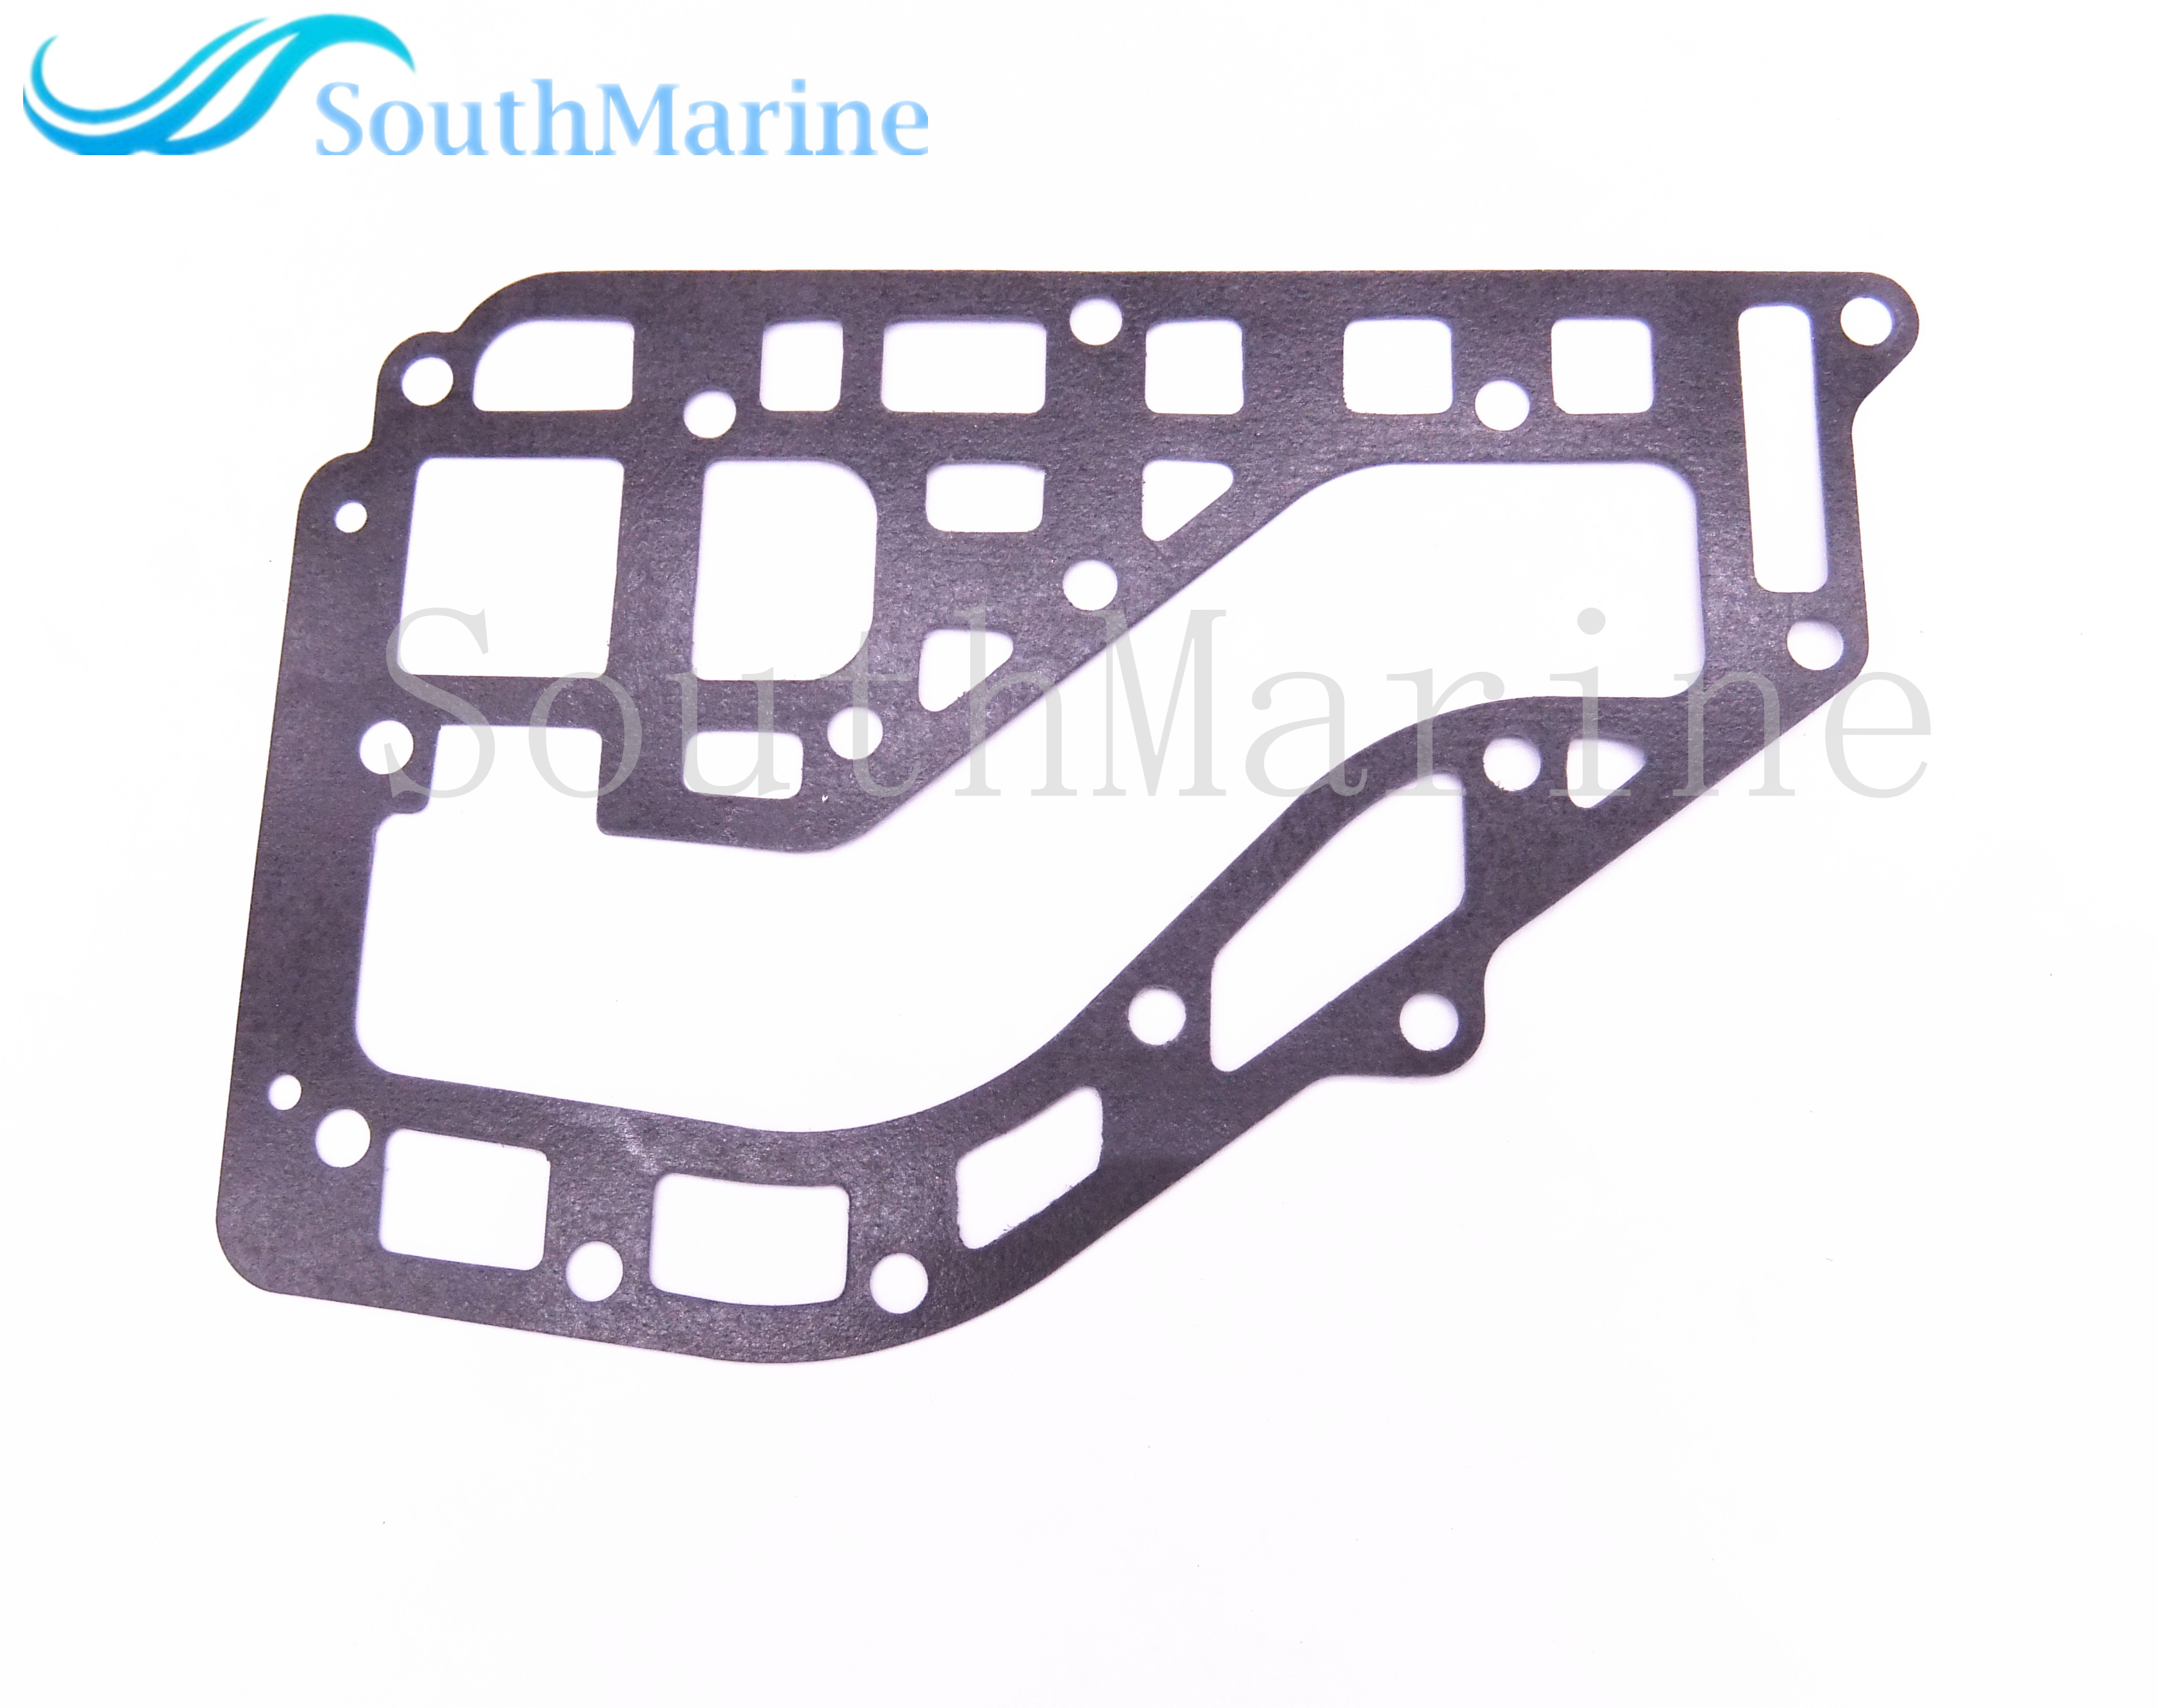 Boat Motor T20-06000010 Exhaust Outer Cover Gasket for Parsun 2-Stroke T20 T25 T30A Outboard Engine